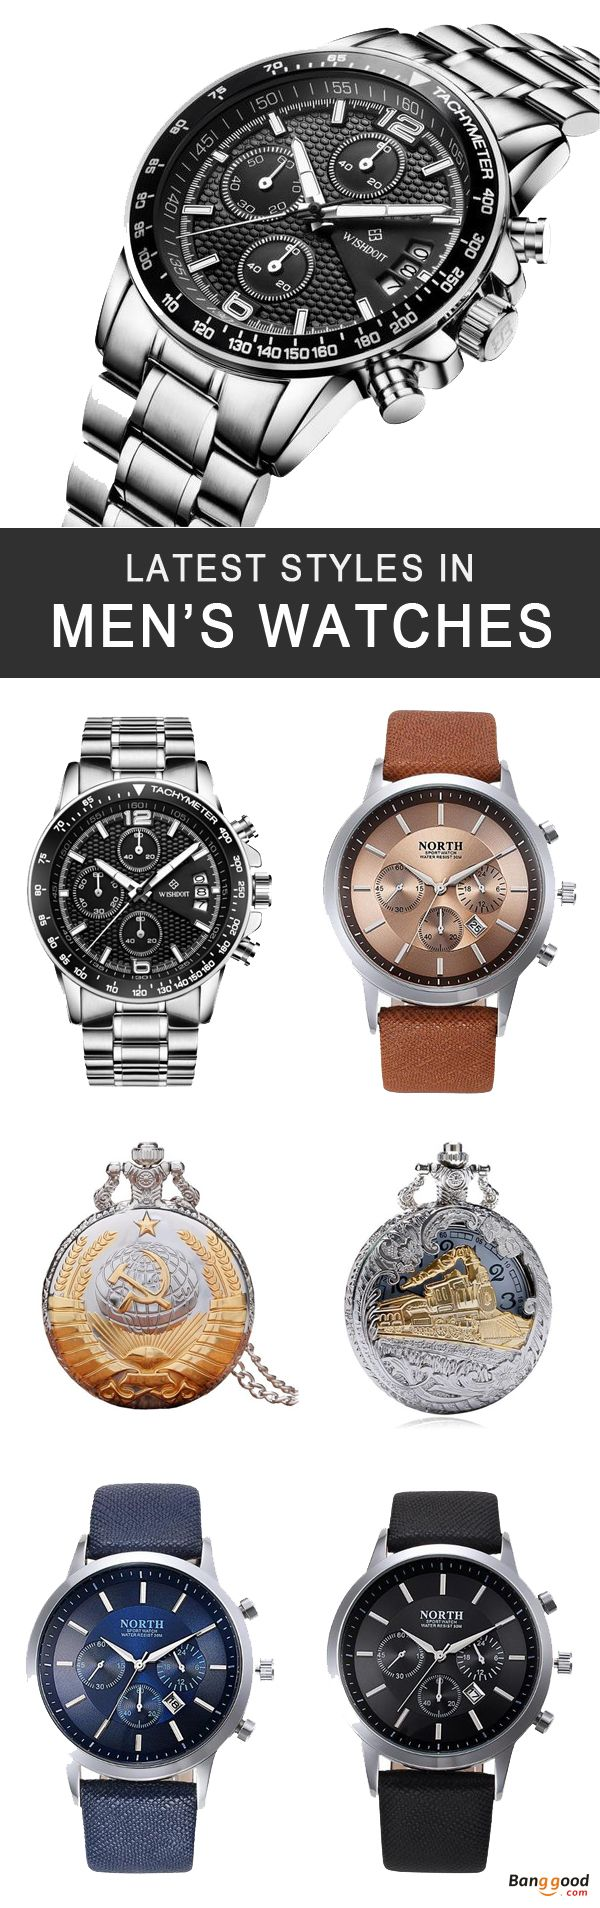 Wholesale Men's Watches, Quartz Watches, Creative Watches, Mechanical Watches, Dual Display Watches, Digital Watches, Pocket Watches, we offer best bang for your buck! come shop!